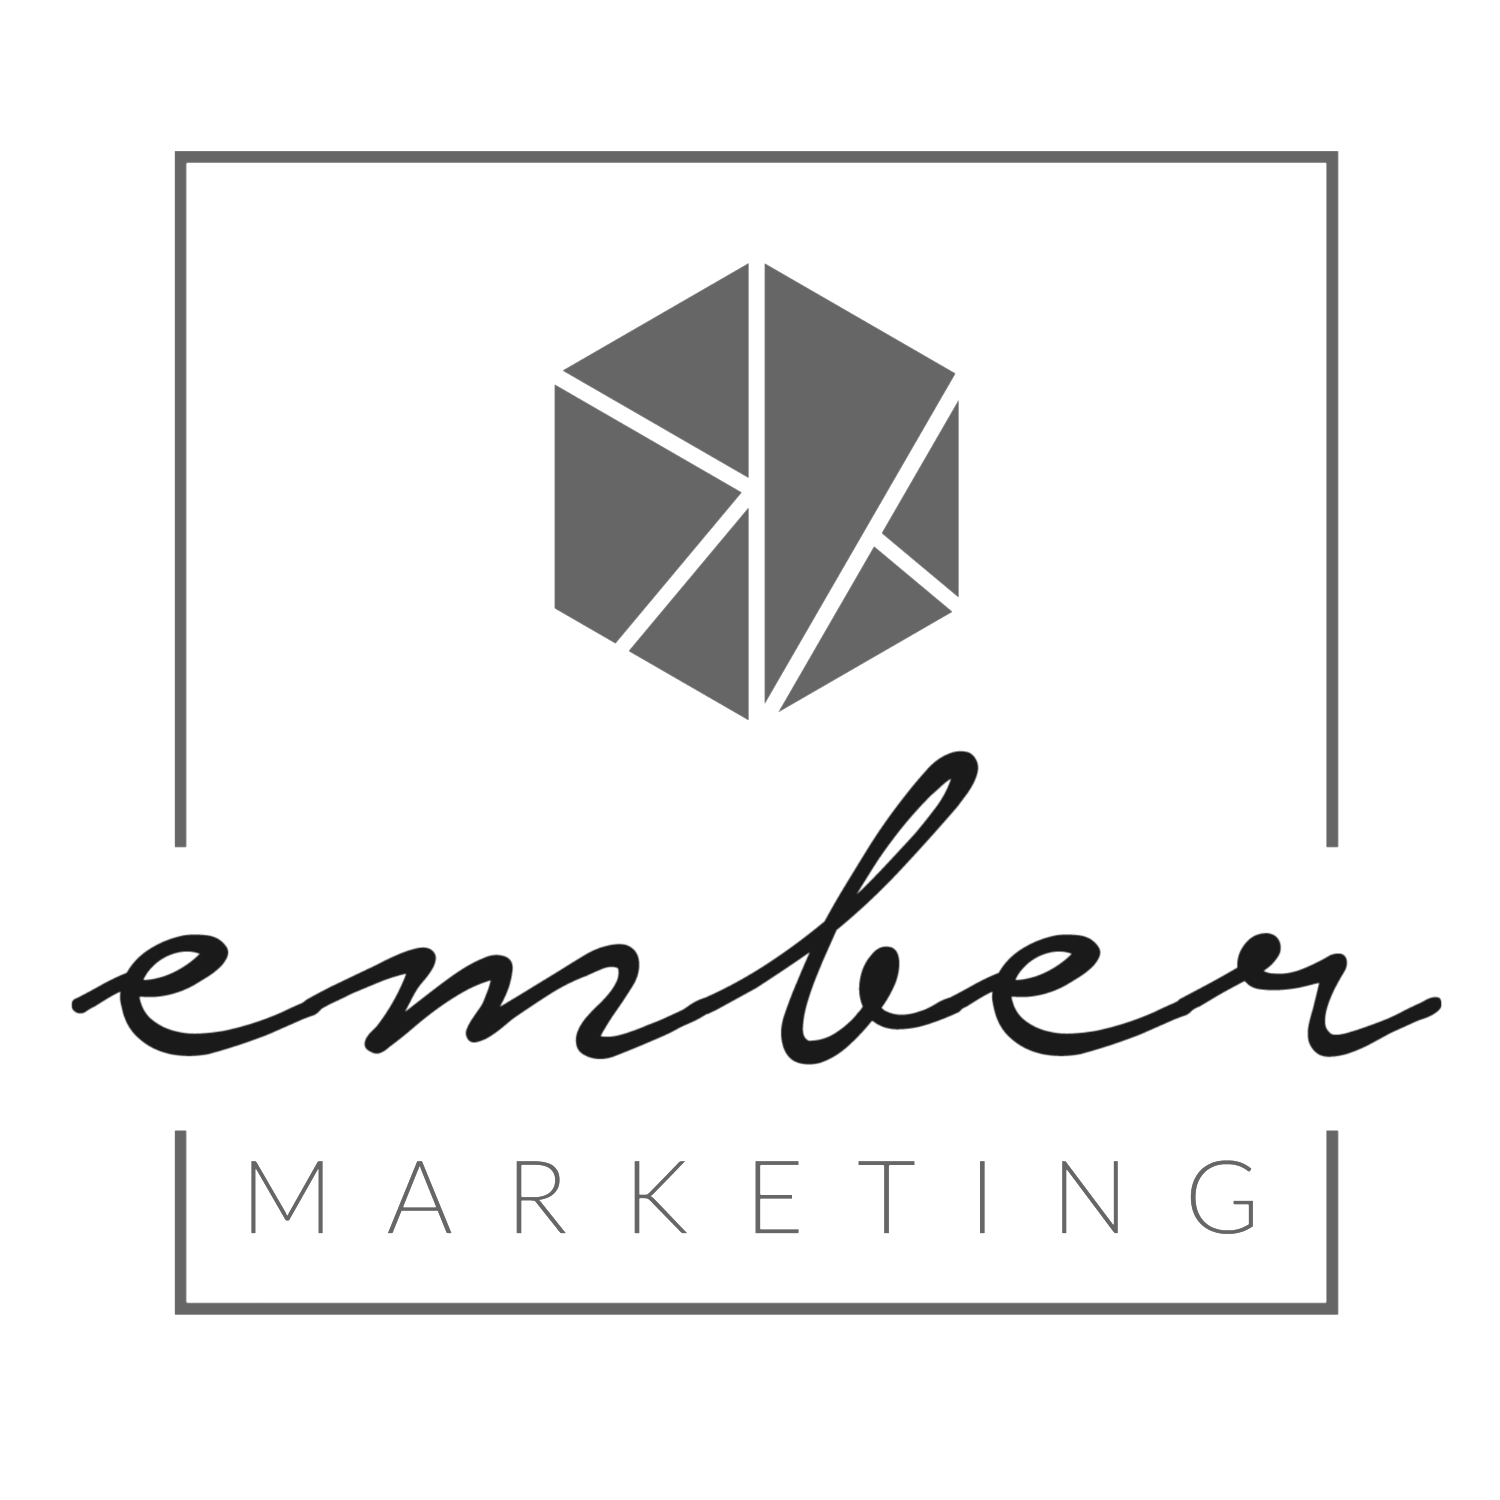 Ember Marketing